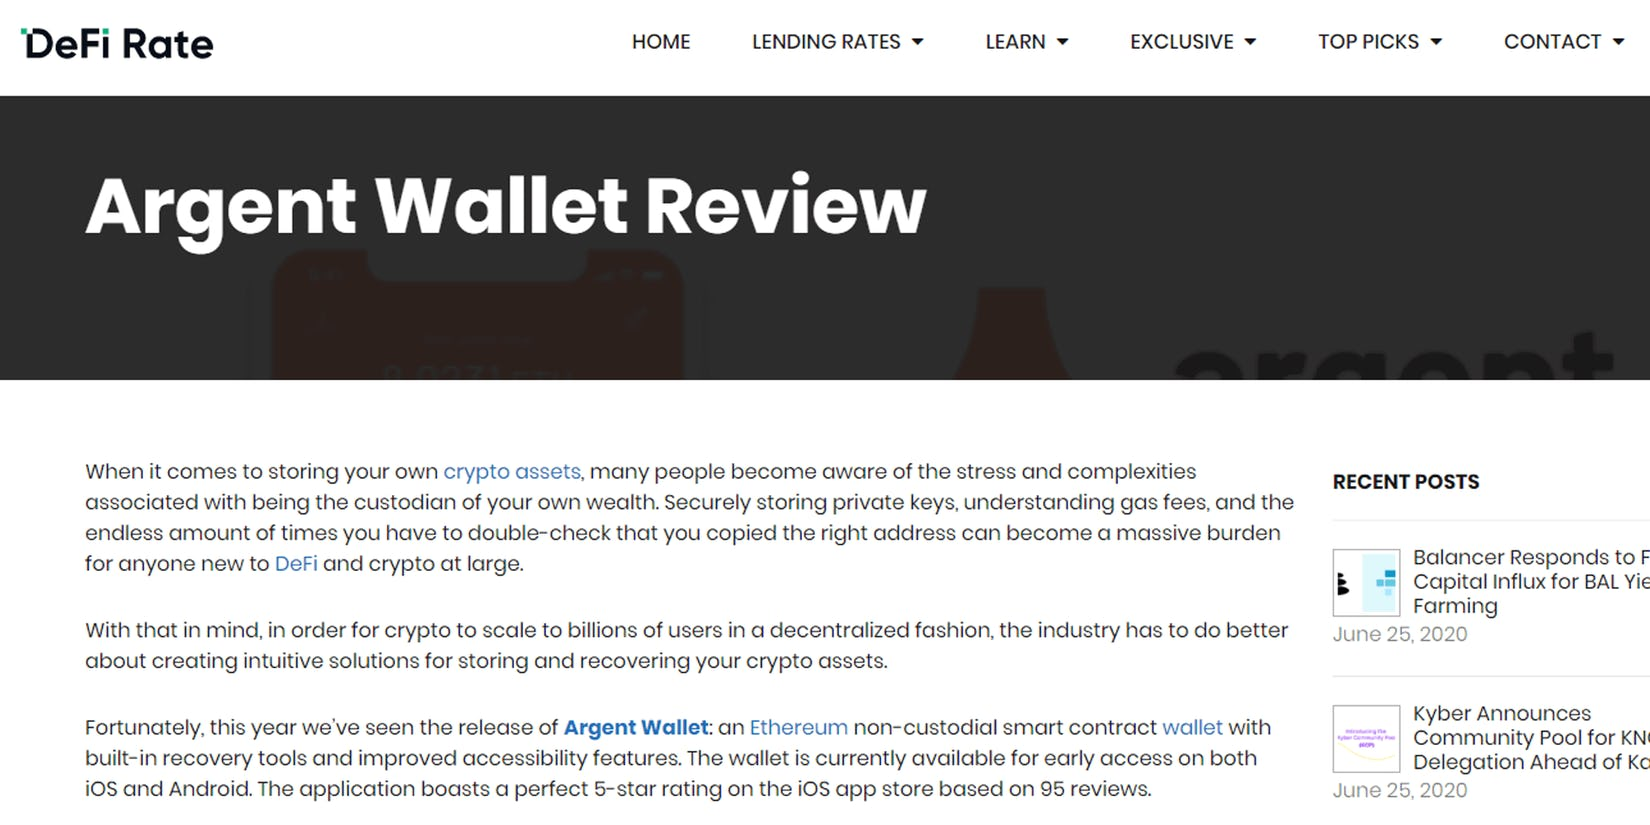 DeFi Rate's review of the Argent wallet